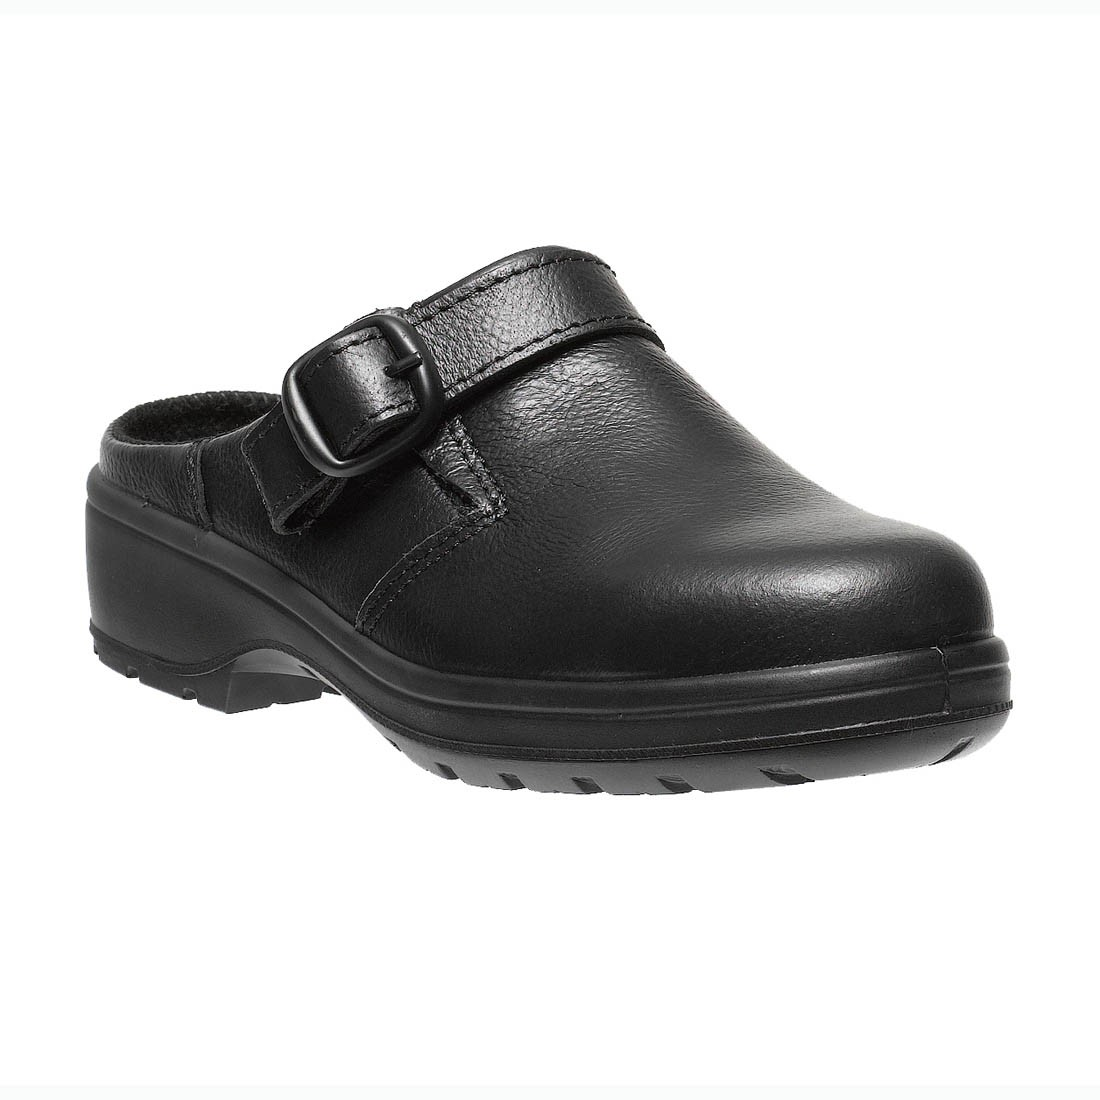 Womens E Safety Shoes